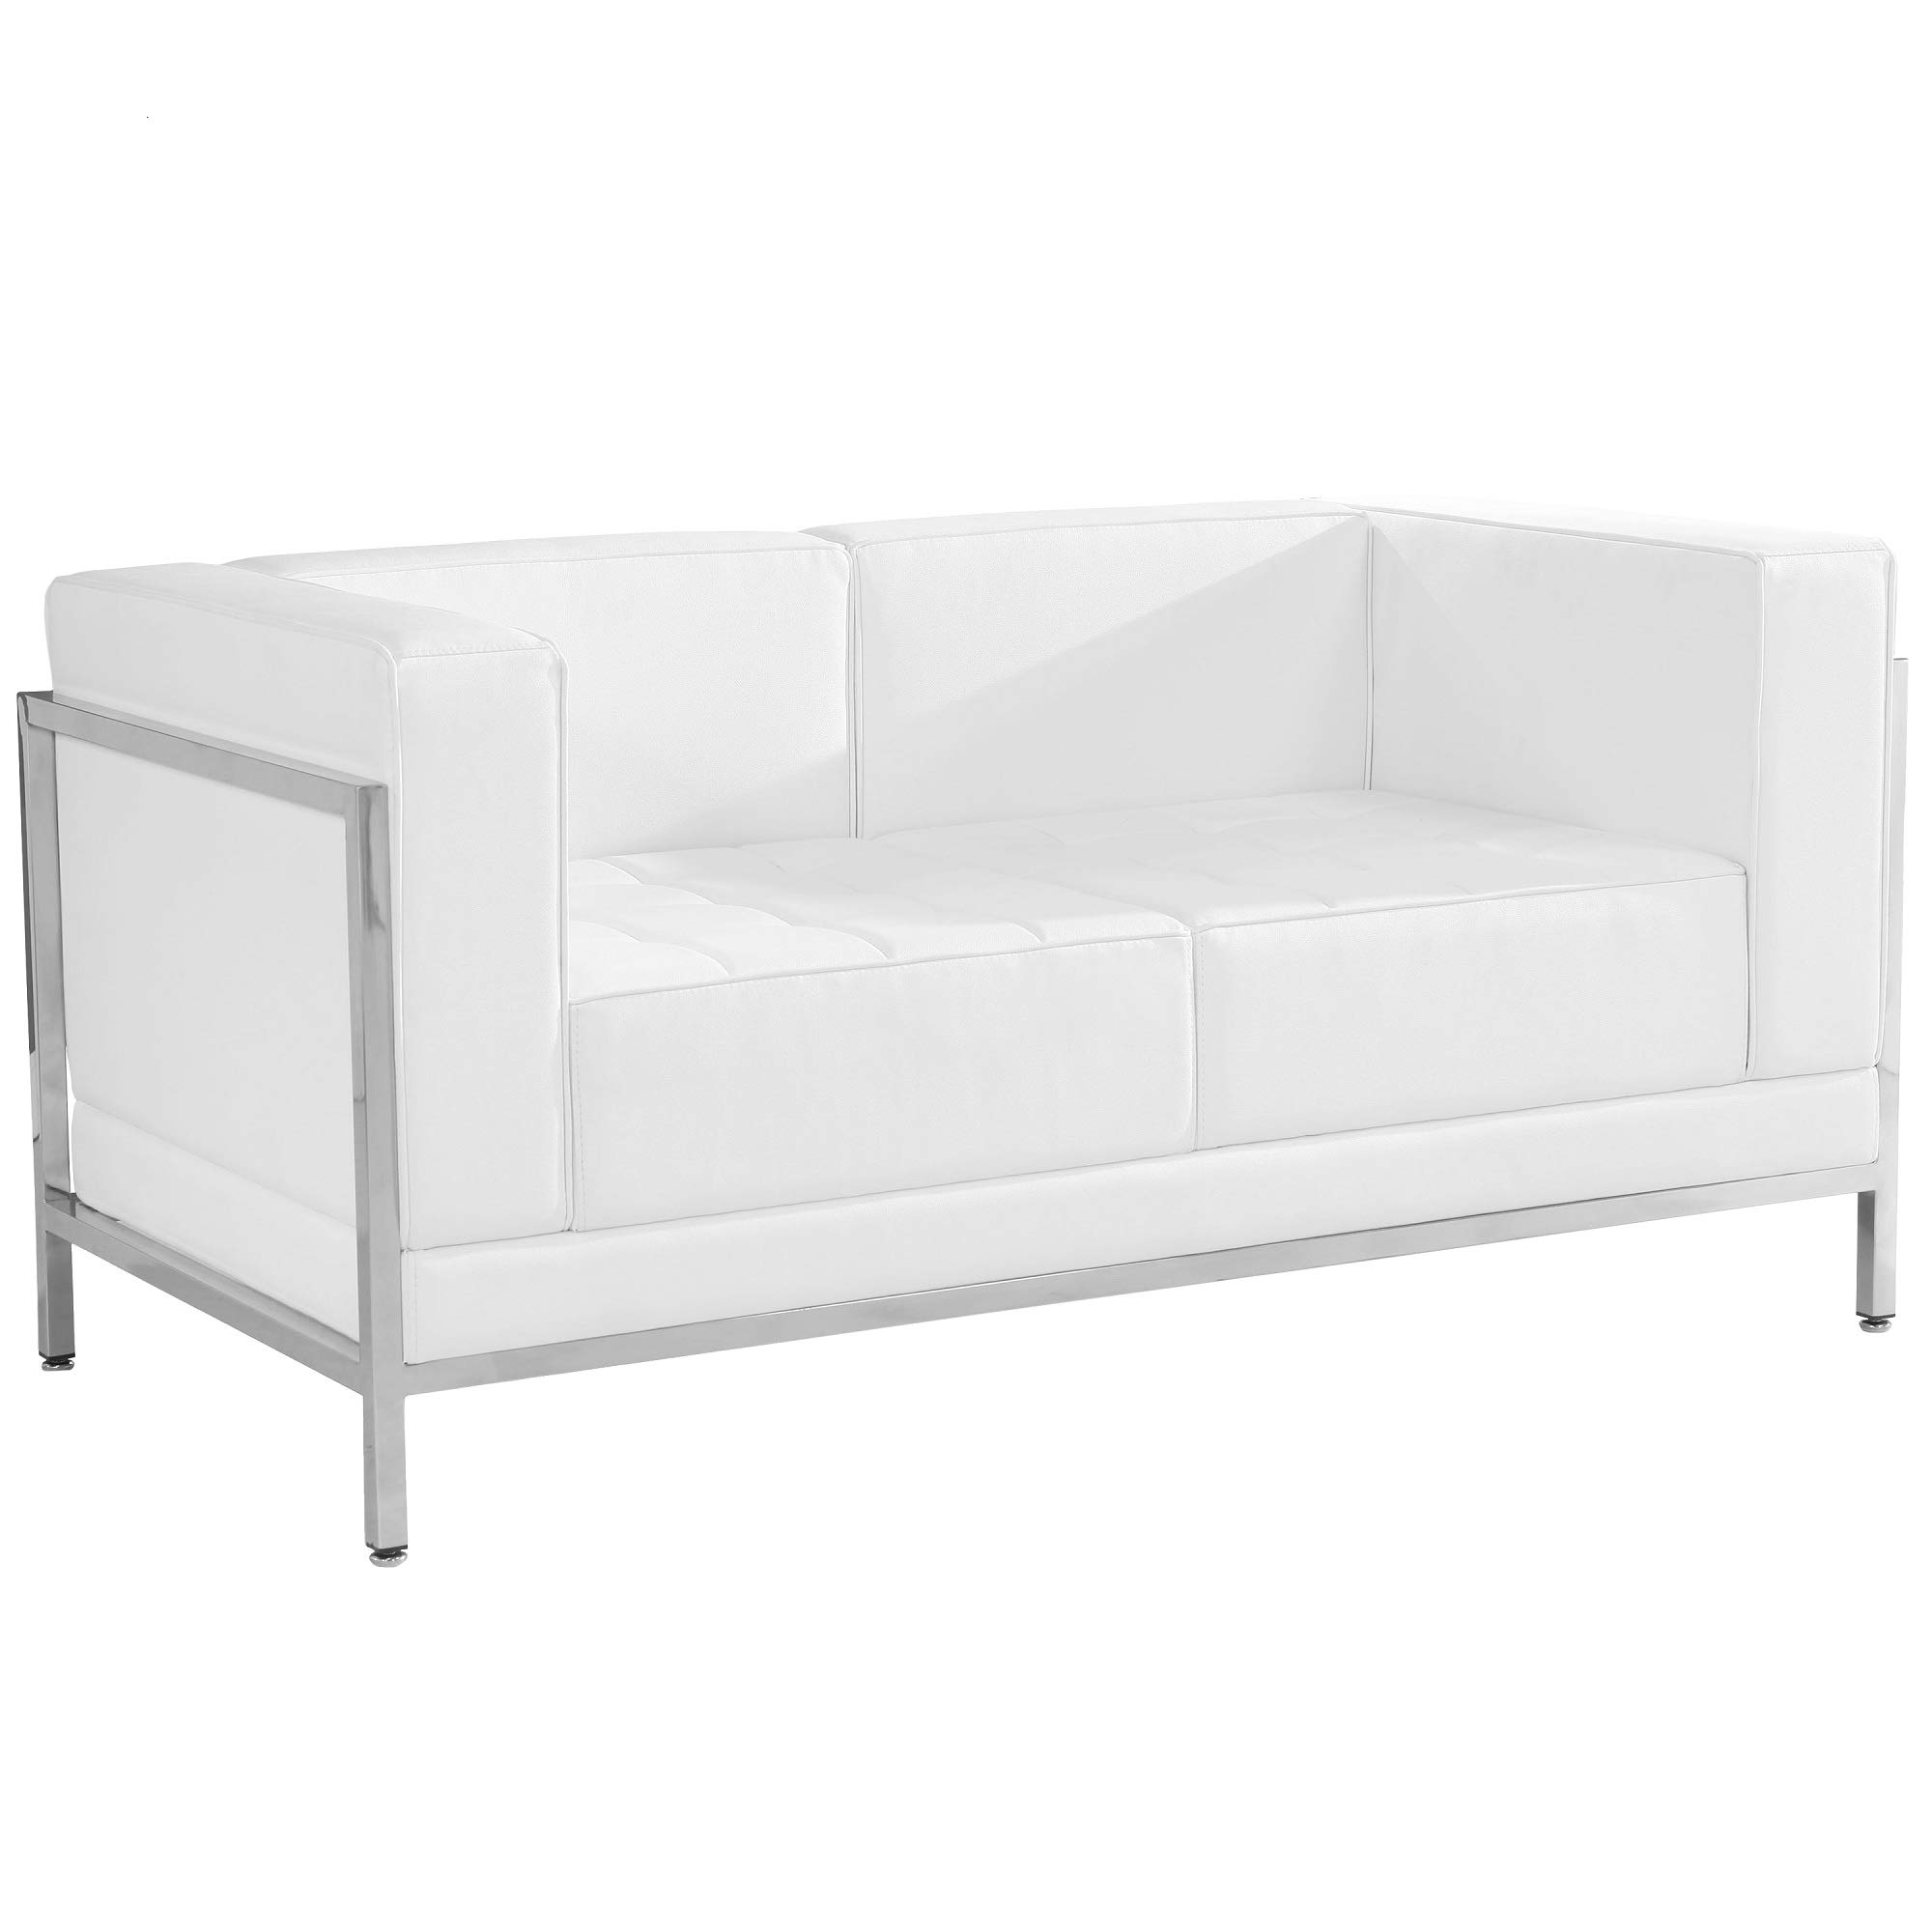 Plata Import Camelia Sofa Bed in Green Velvet Upholstery seat for 3 Persons Living Room Couch Sleeper Sofa Wood Legs